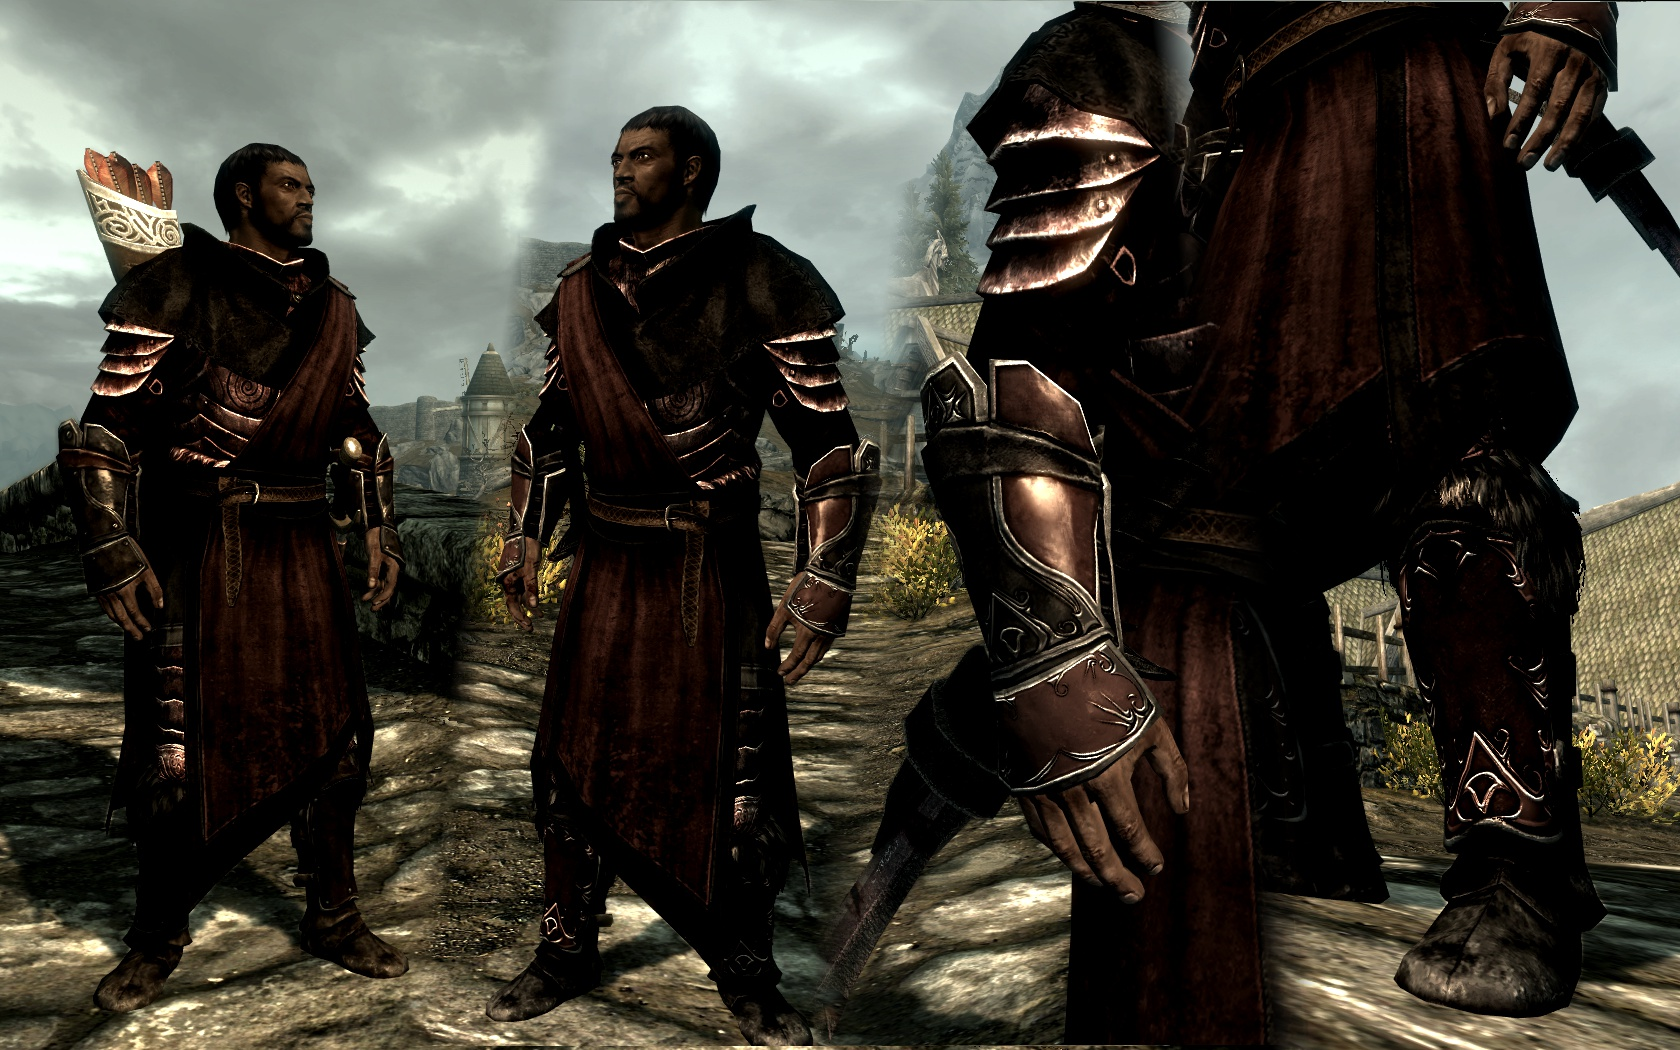 skyrim battle id s and commands Skyrim best mods and console commands nika december 5, 2016 december 6, 2016 no comments on skyrim best mods and console commands even with the special edition in our steam library we still keep playing around with the normal game due to our modded saves and the characters we created.